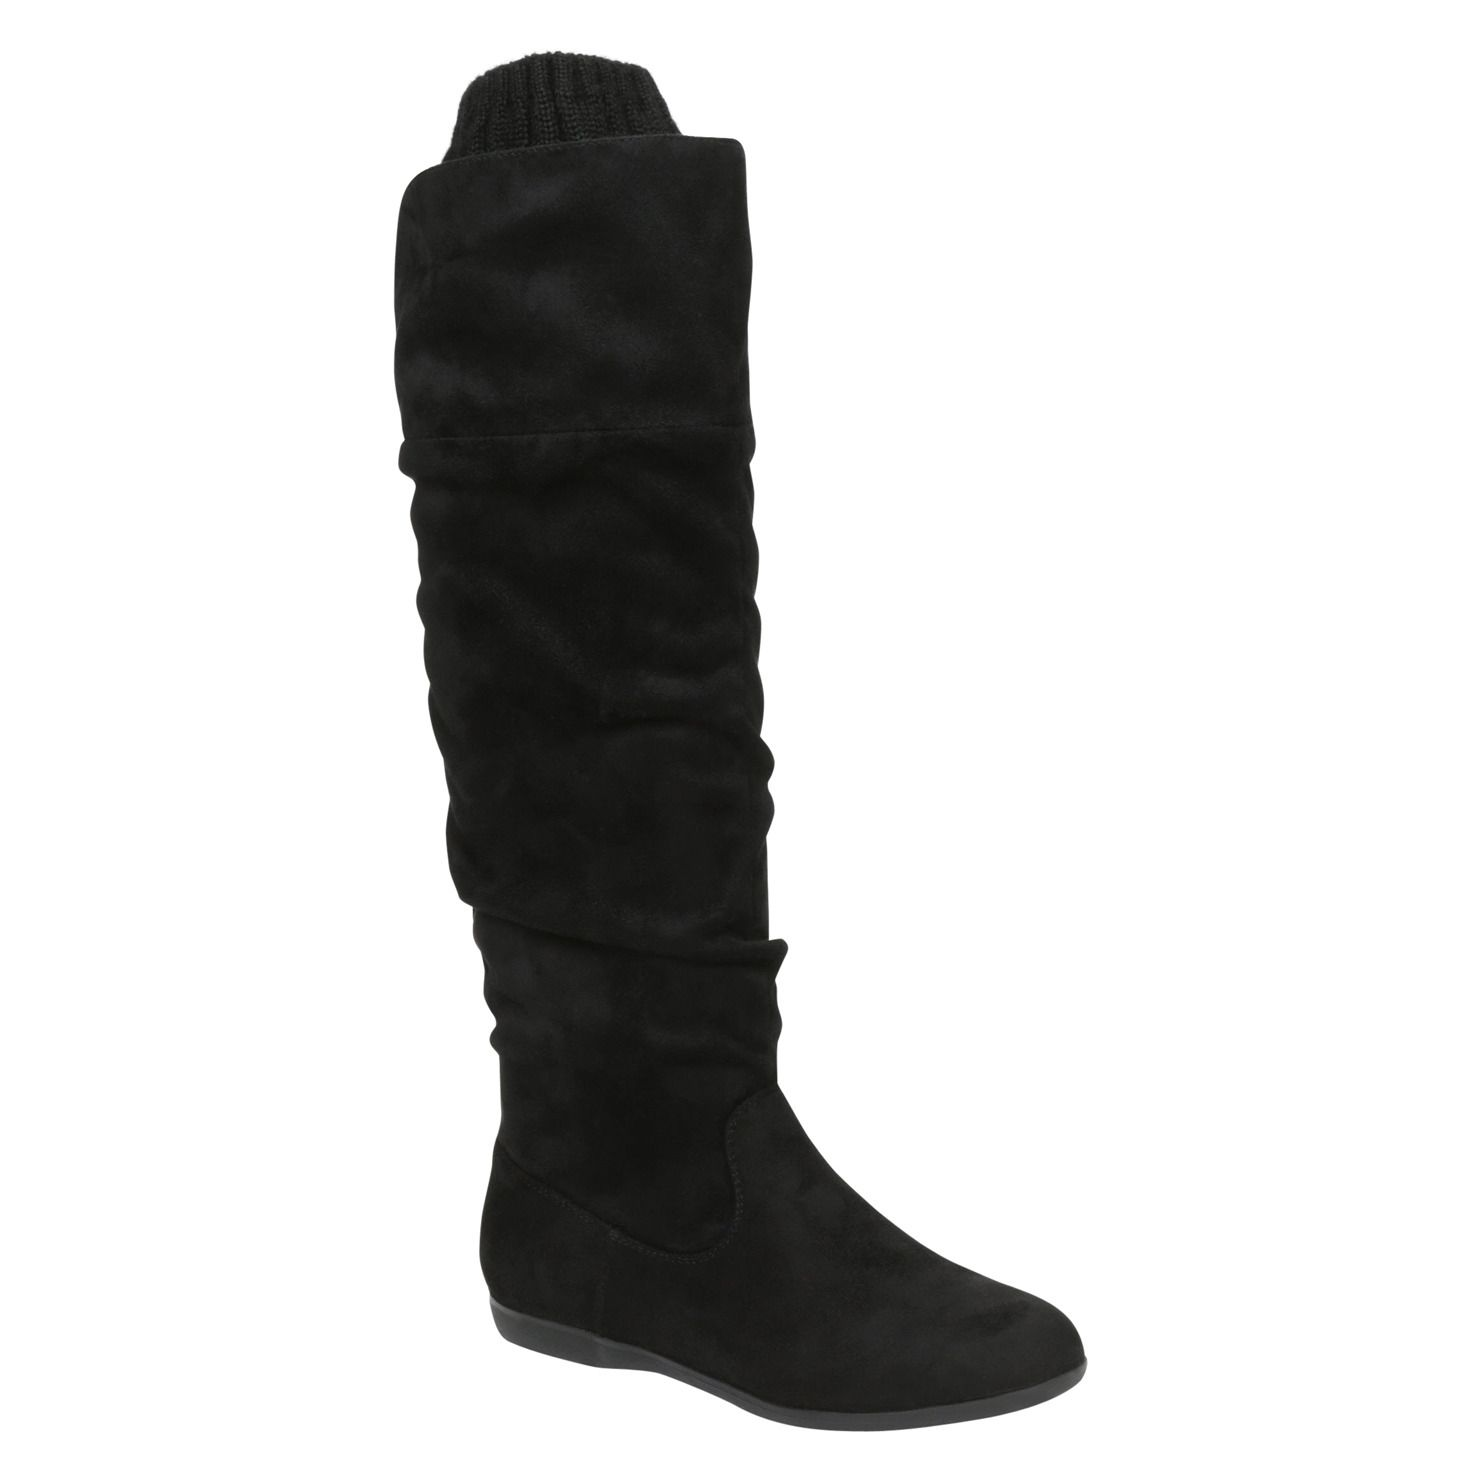 HARSHA - women's tall boots boots for sale at ALDO Shoes.